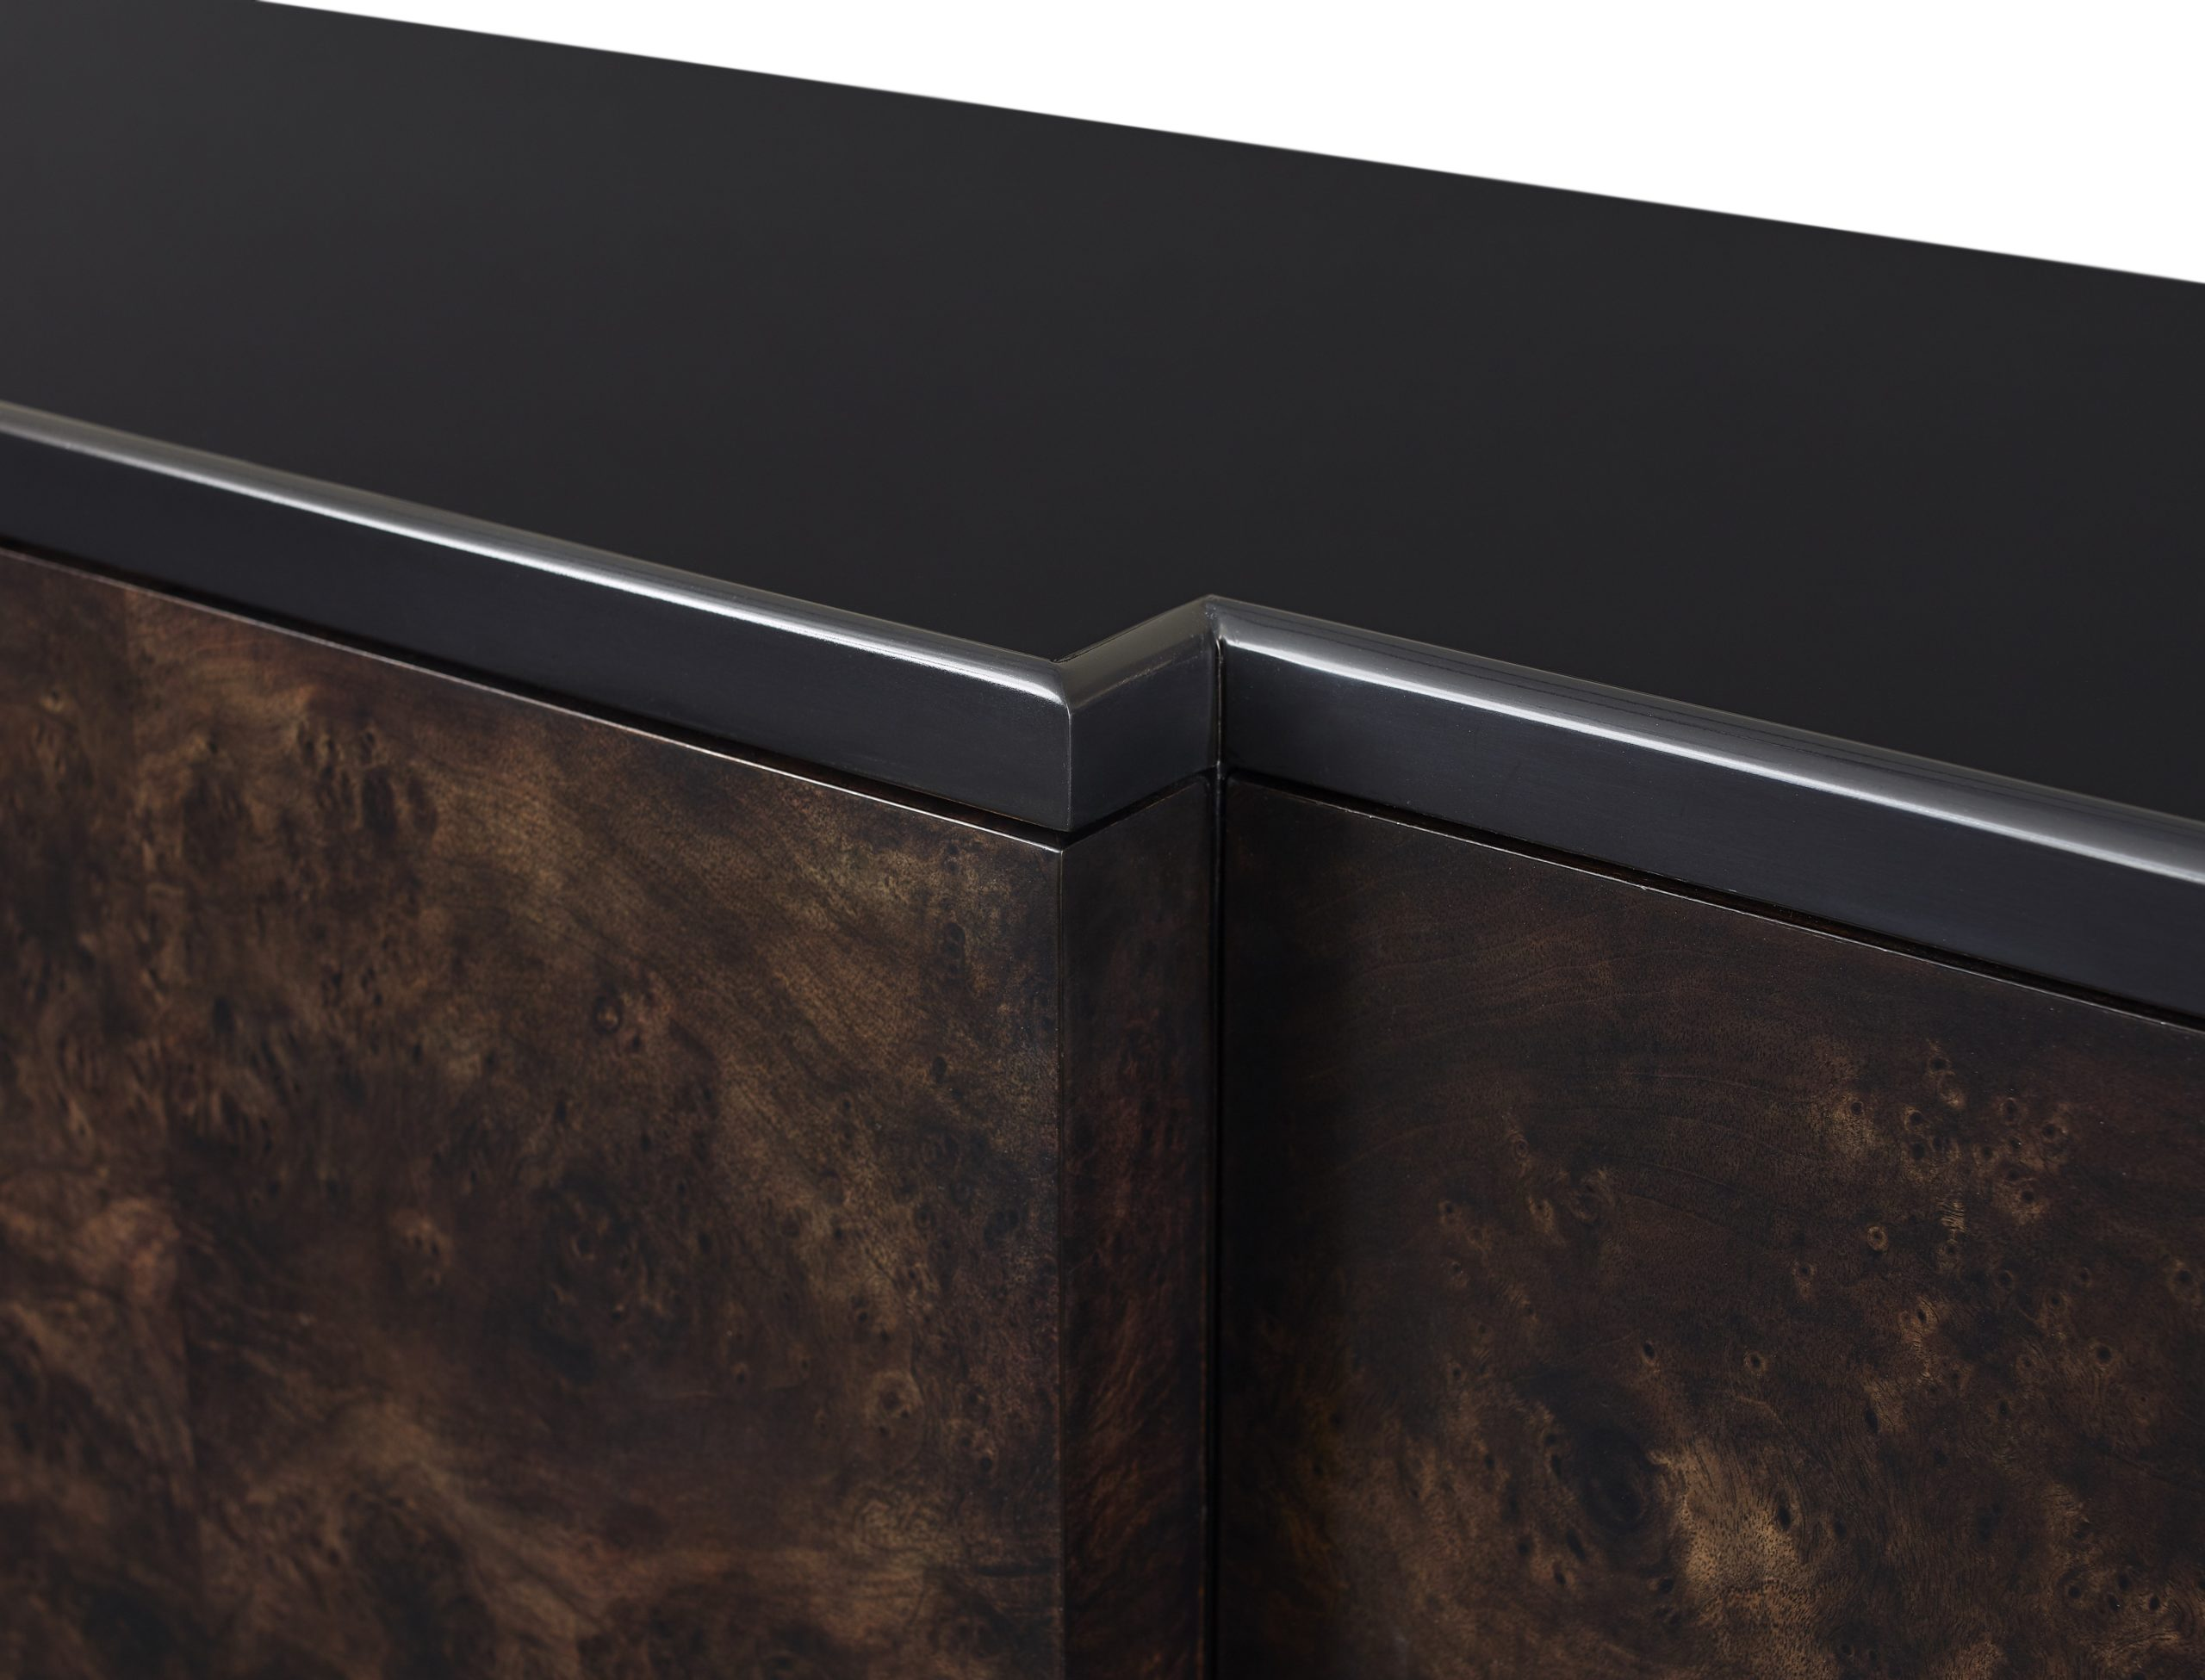 Baker_products_WNWN_maximus_credenza_BAA3030_DETAIL-scaled-1